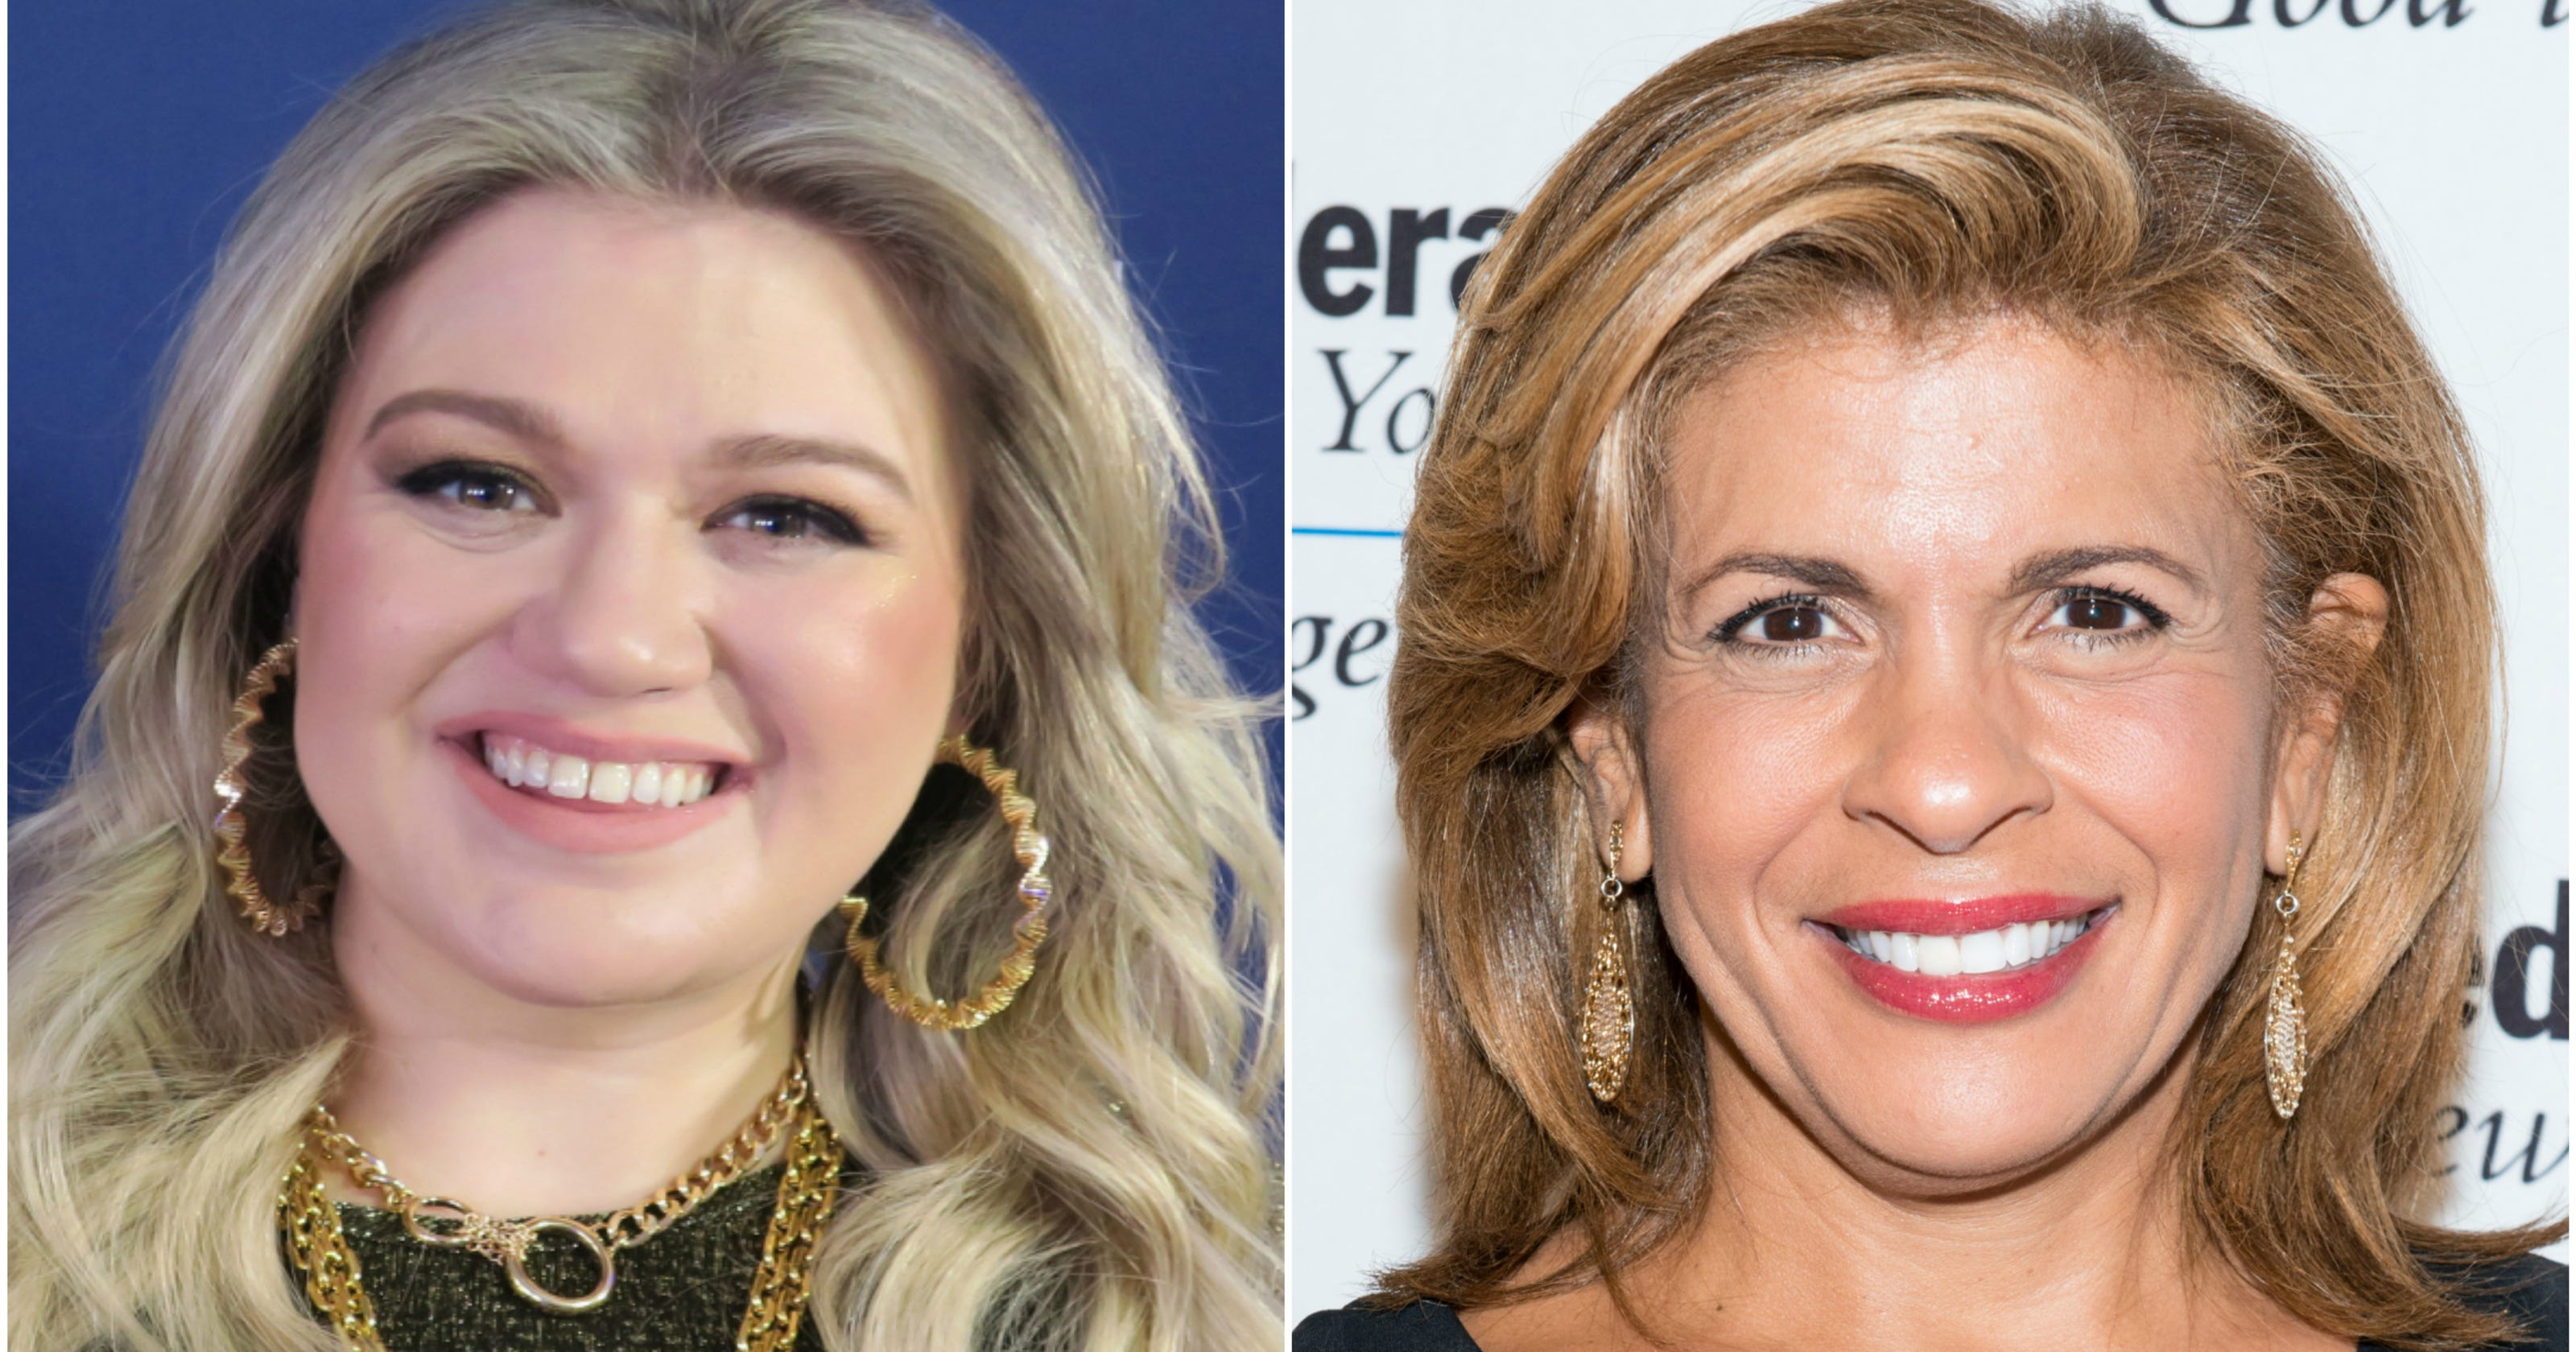 Kelly Clarkson Wrote A Song Based On Hoda Kotbs New Childrens Book